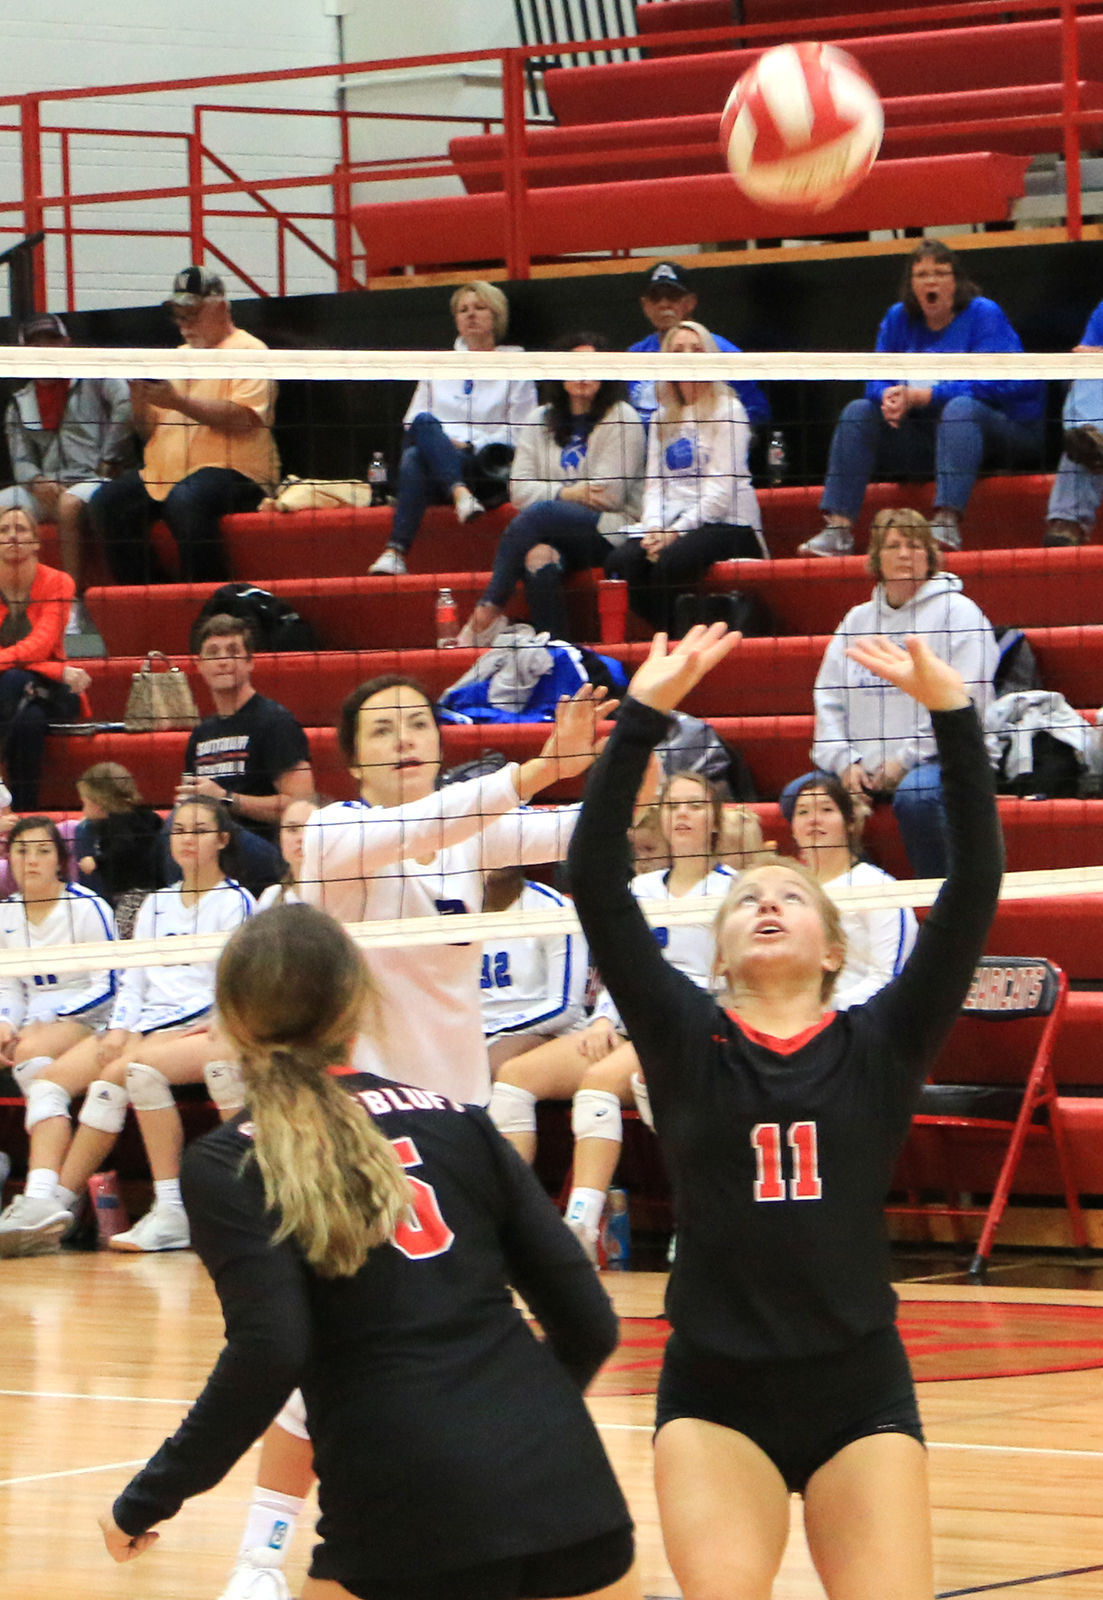 Sidney volleyball team wins title at Twin City Invite